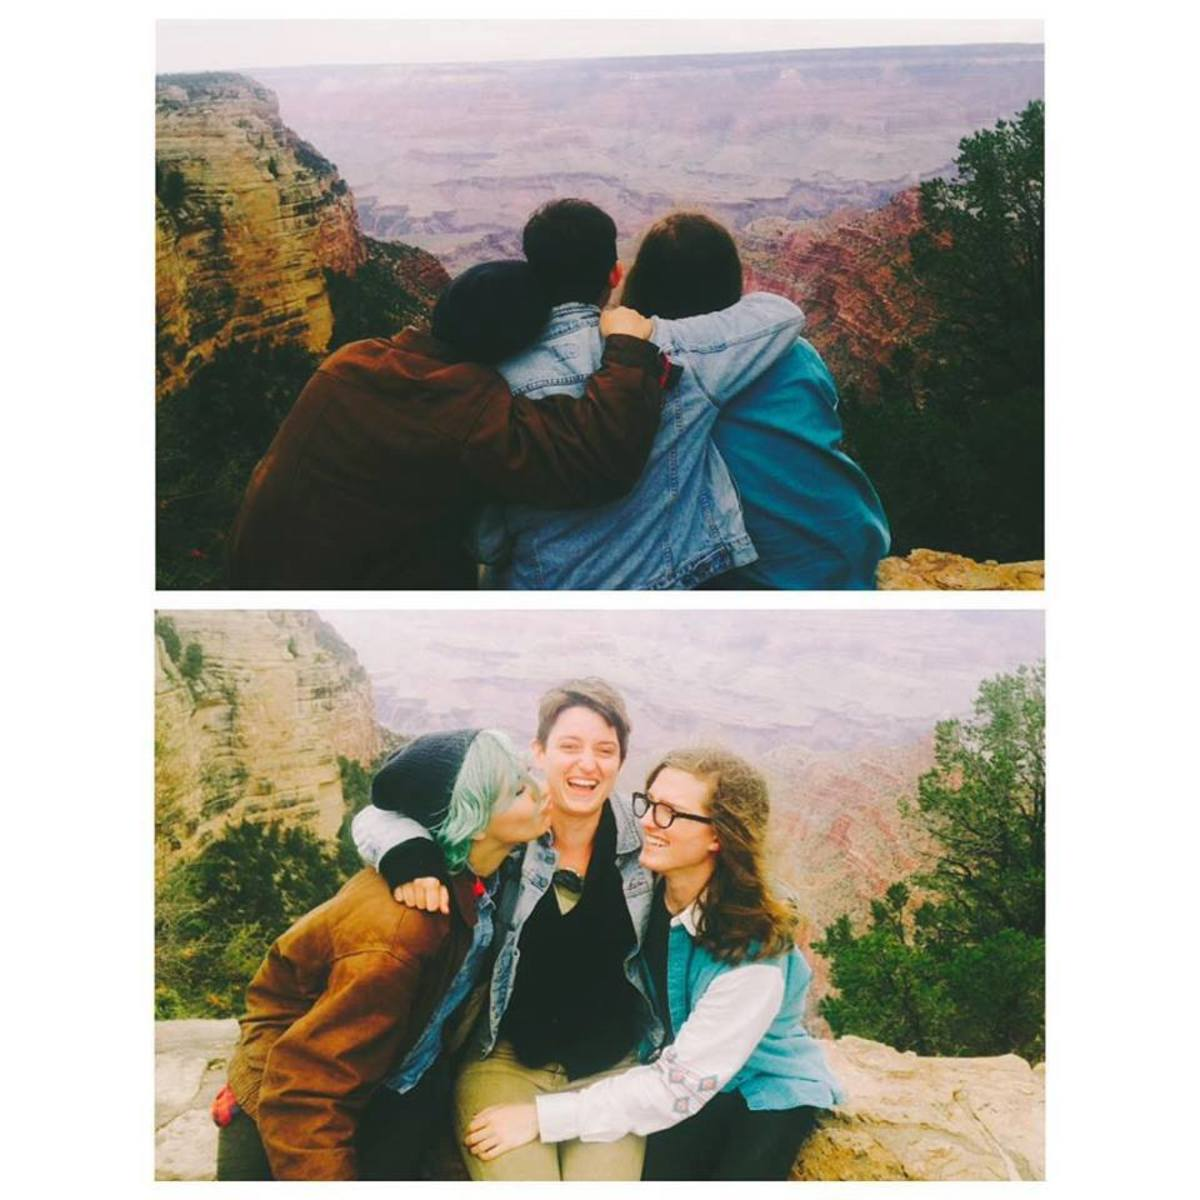 My two trip-mates and I at the Grand Canyon.